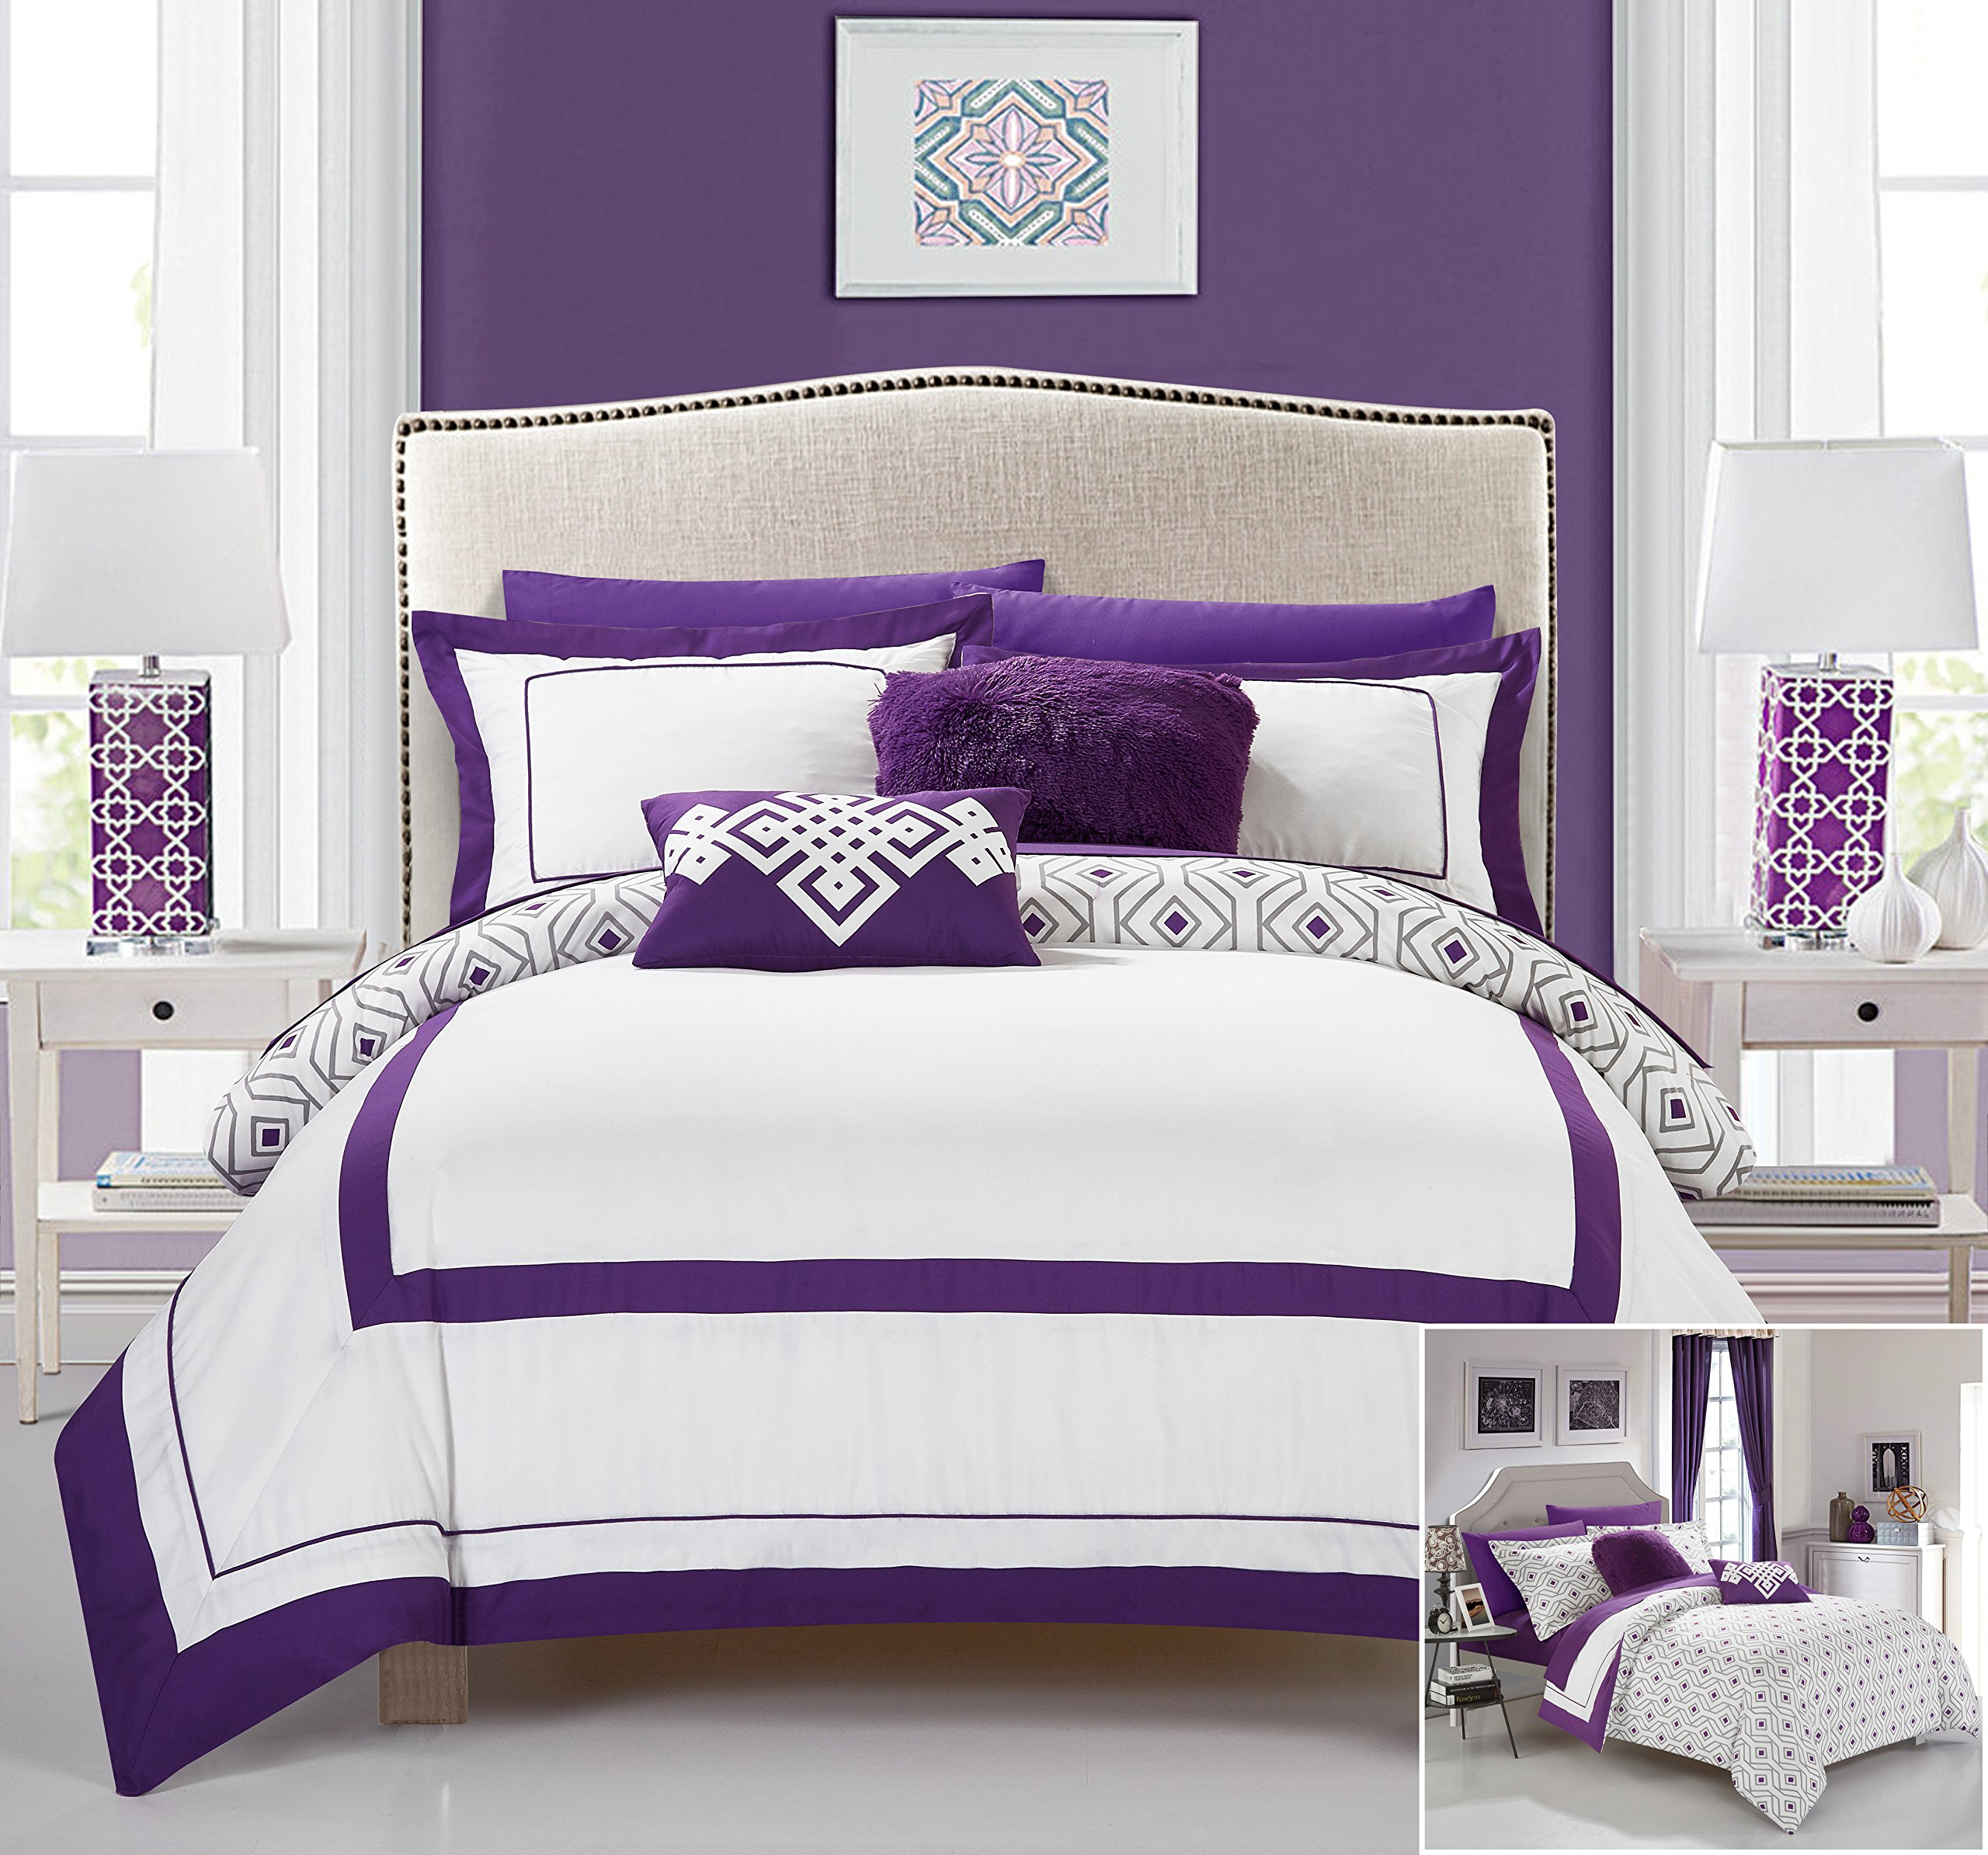 Chic Home 7 Piece Joselito Contemprary geometric reversible Bold Lines hotel collection bed in bag, luxury decor pillows included Twin Comforter Set Purple